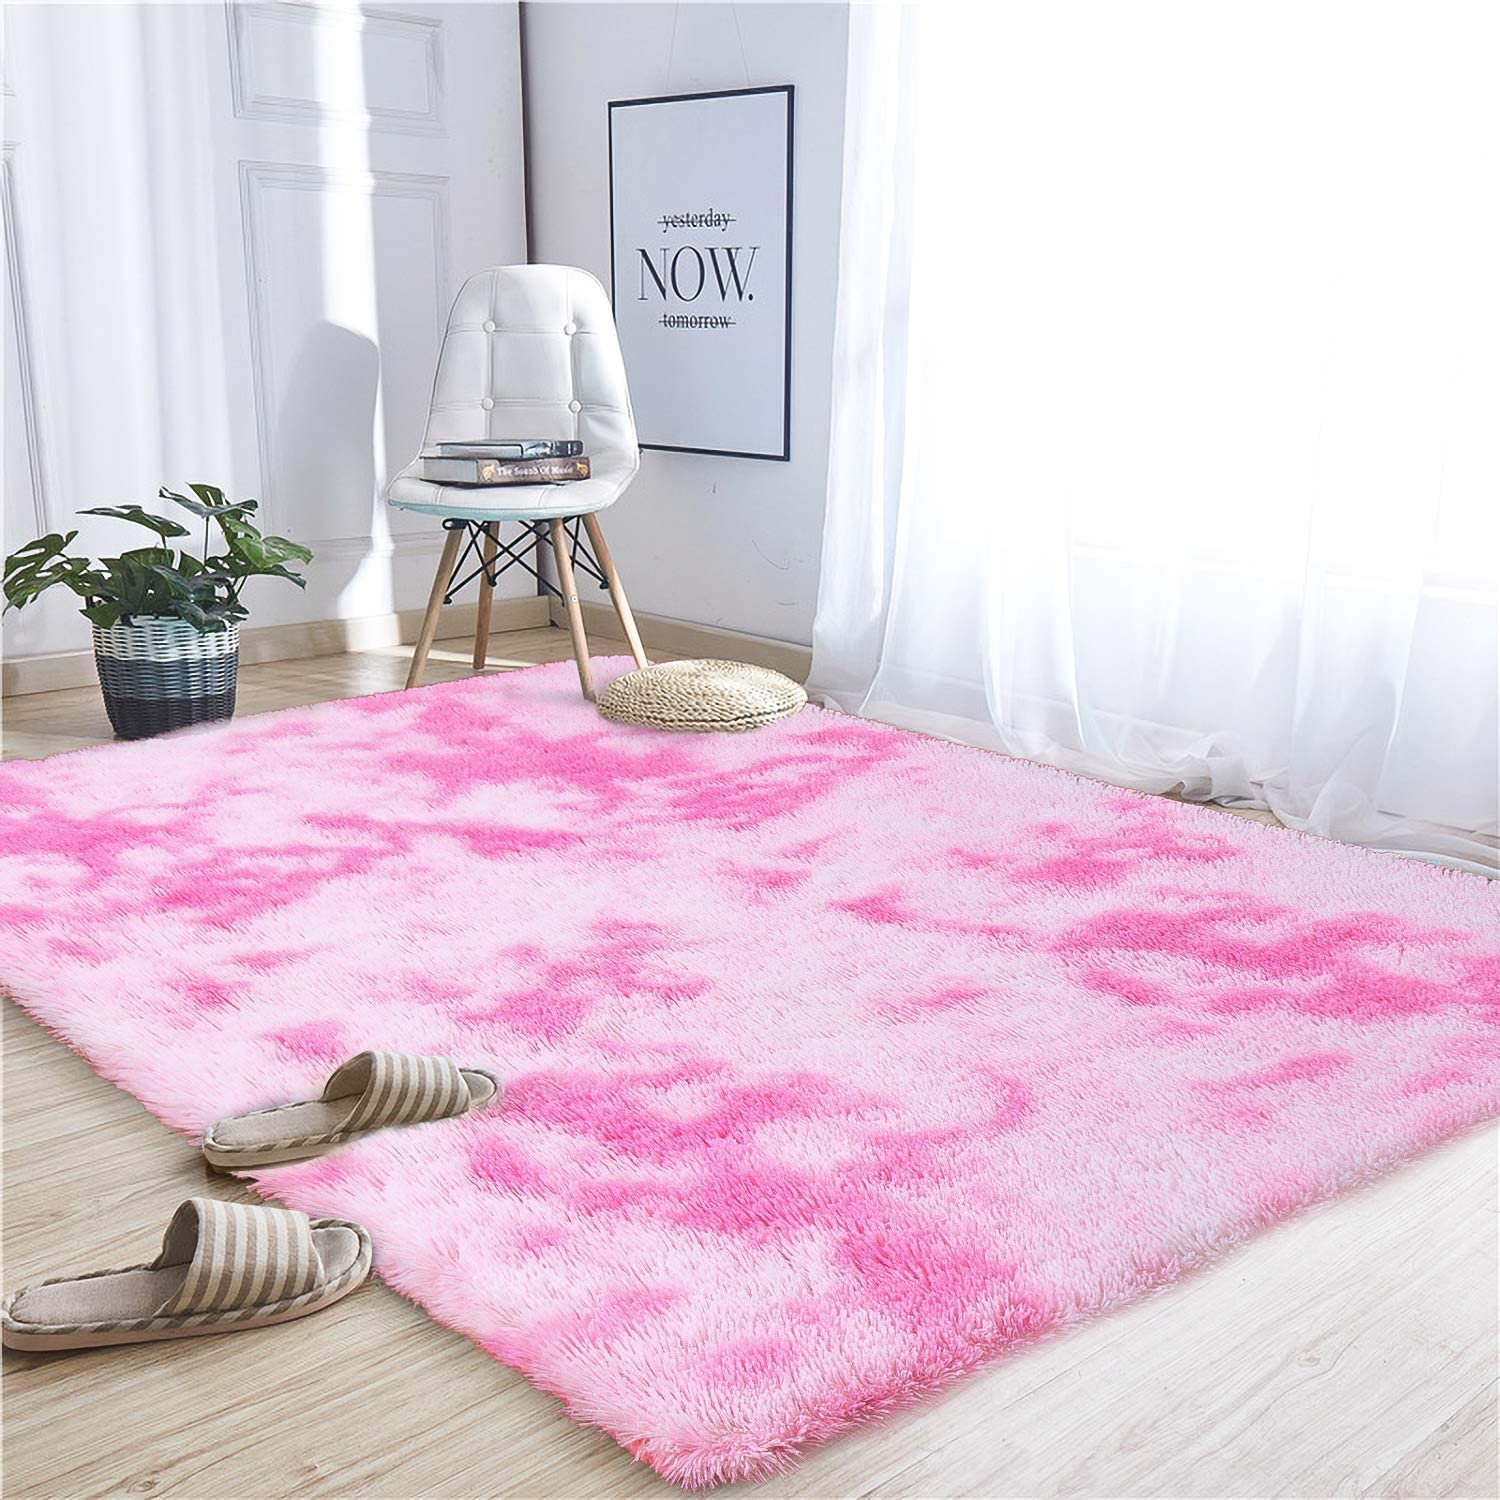 Noahas Abstract Shaggy Rug for Bedroom Ultra Soft Fluffy Carpets for Kids Nursery Teens Room Girls Boys Thick Accent Rugs Home Bedrooms Floor Decorative, 5 ft x 8 ft, Pink